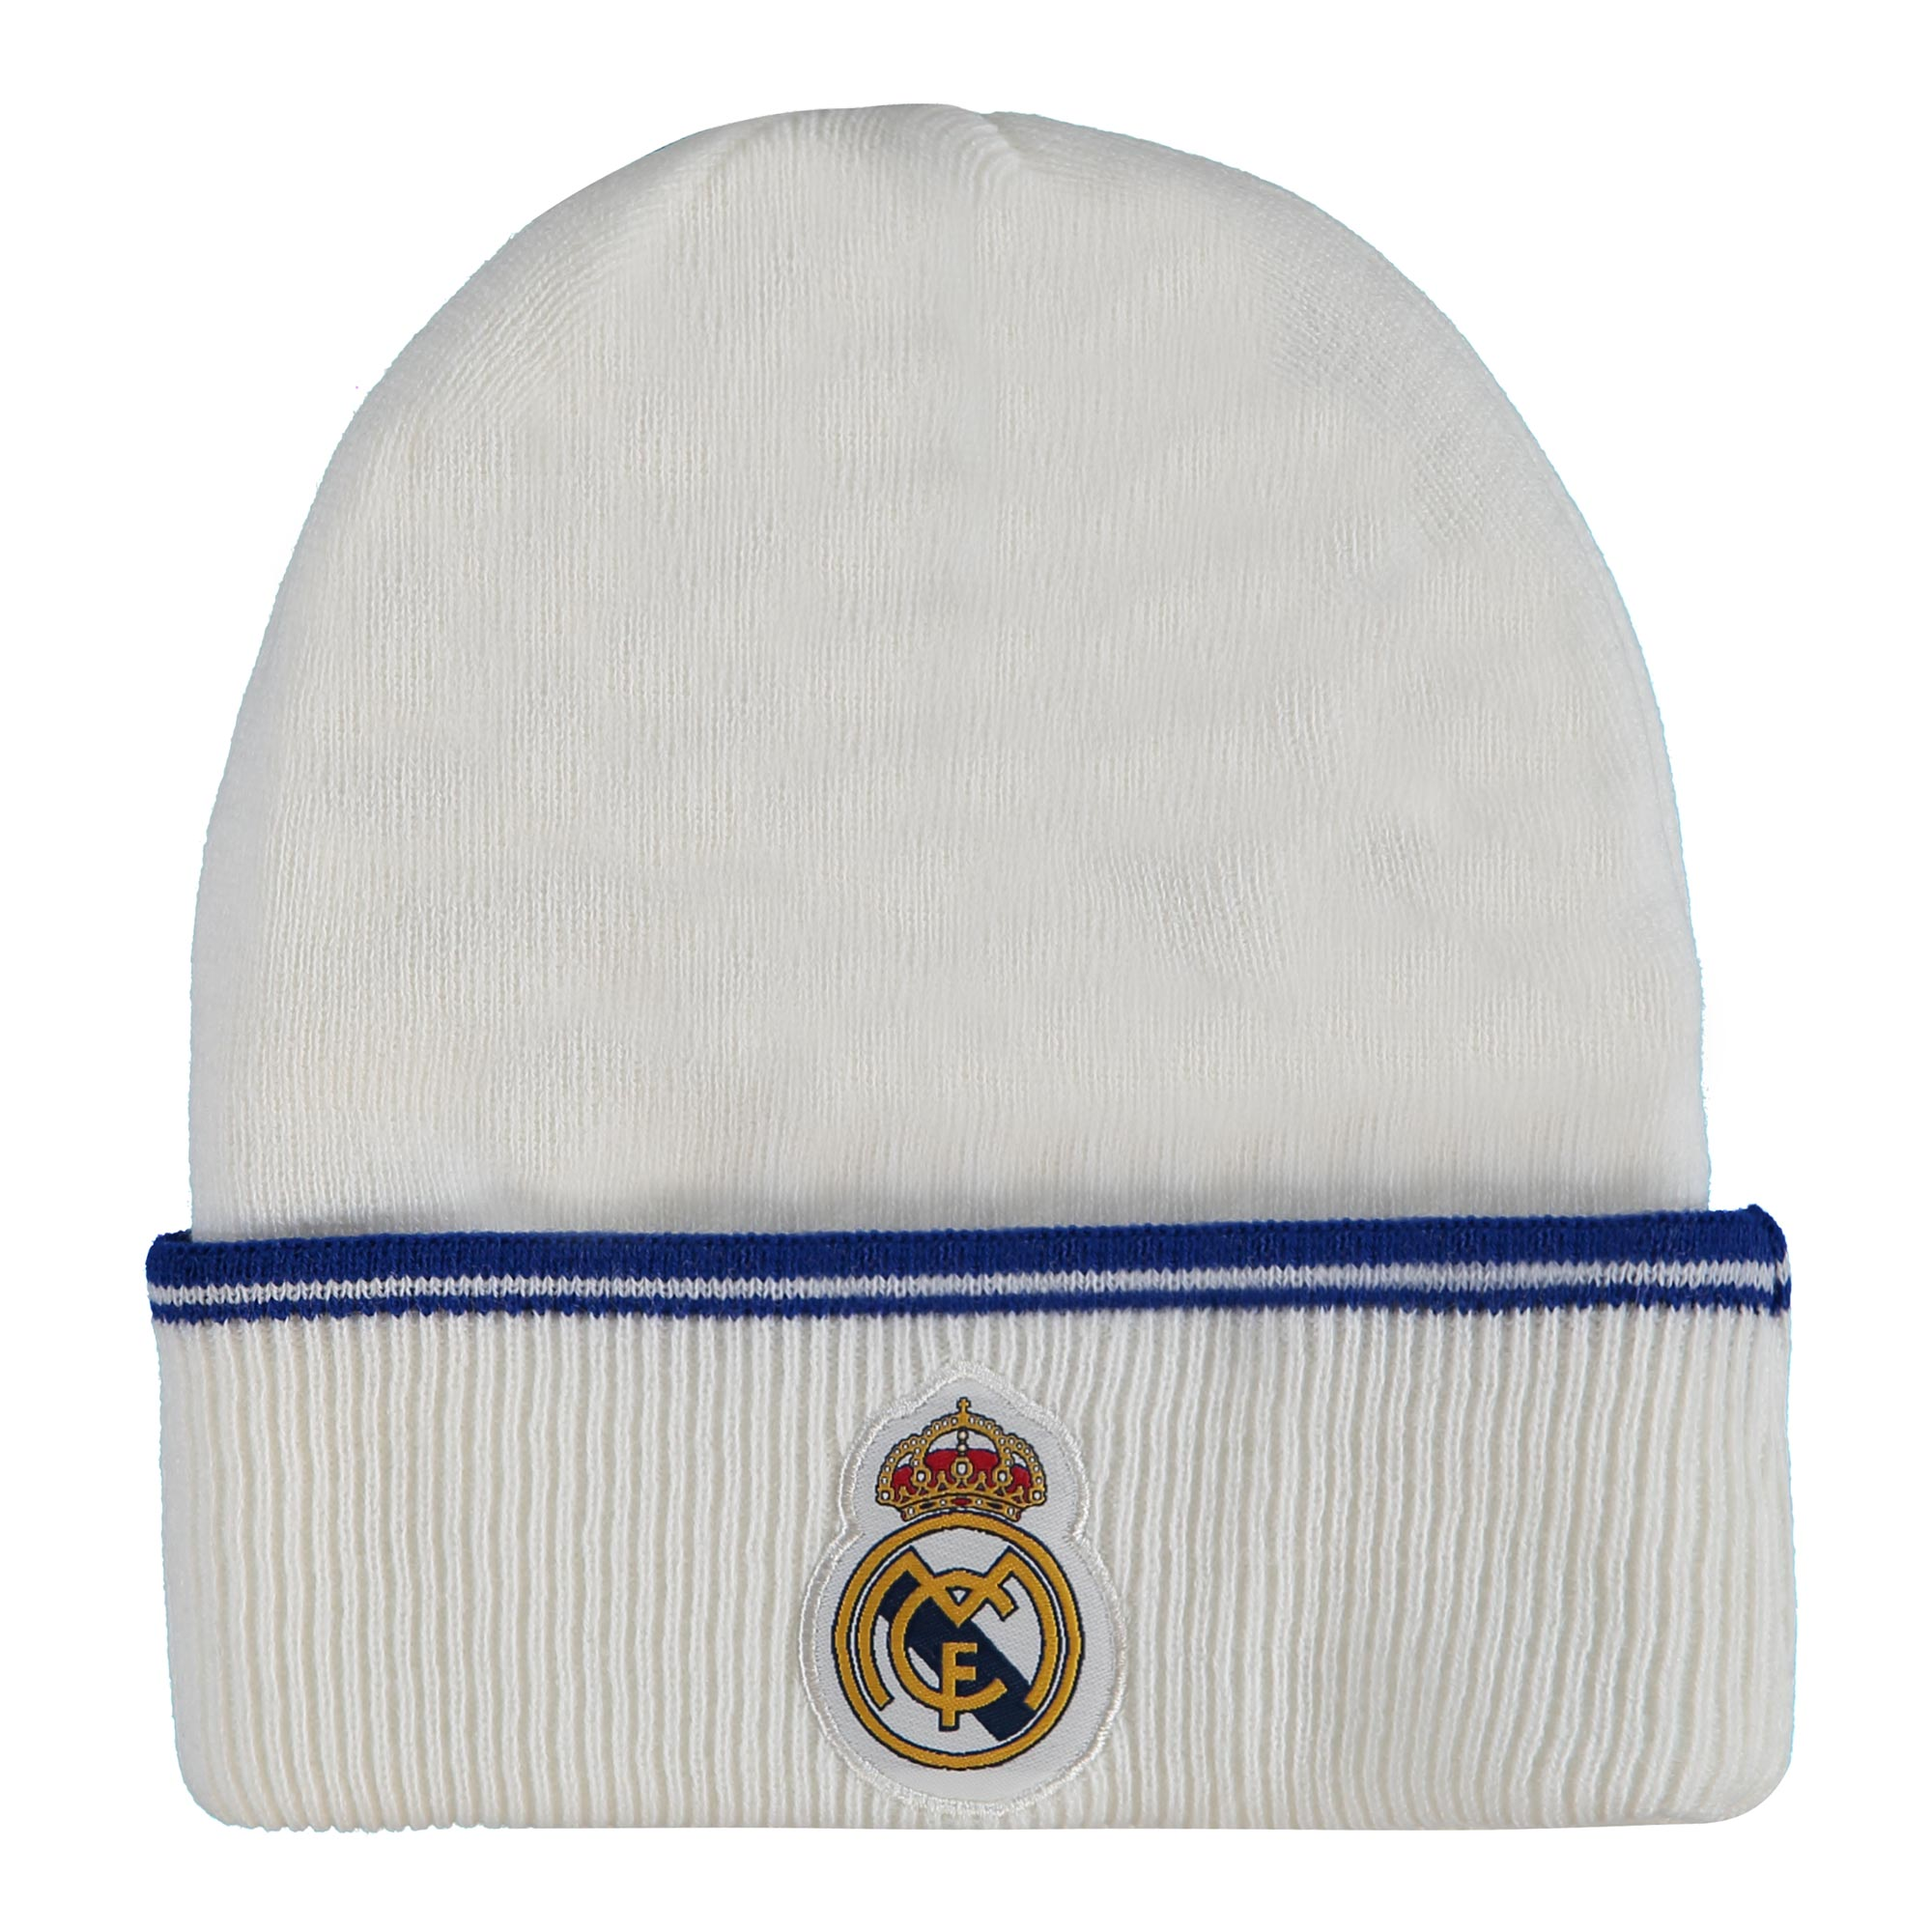 Bonnet de fan Real Madrid - Blanc - Adulte